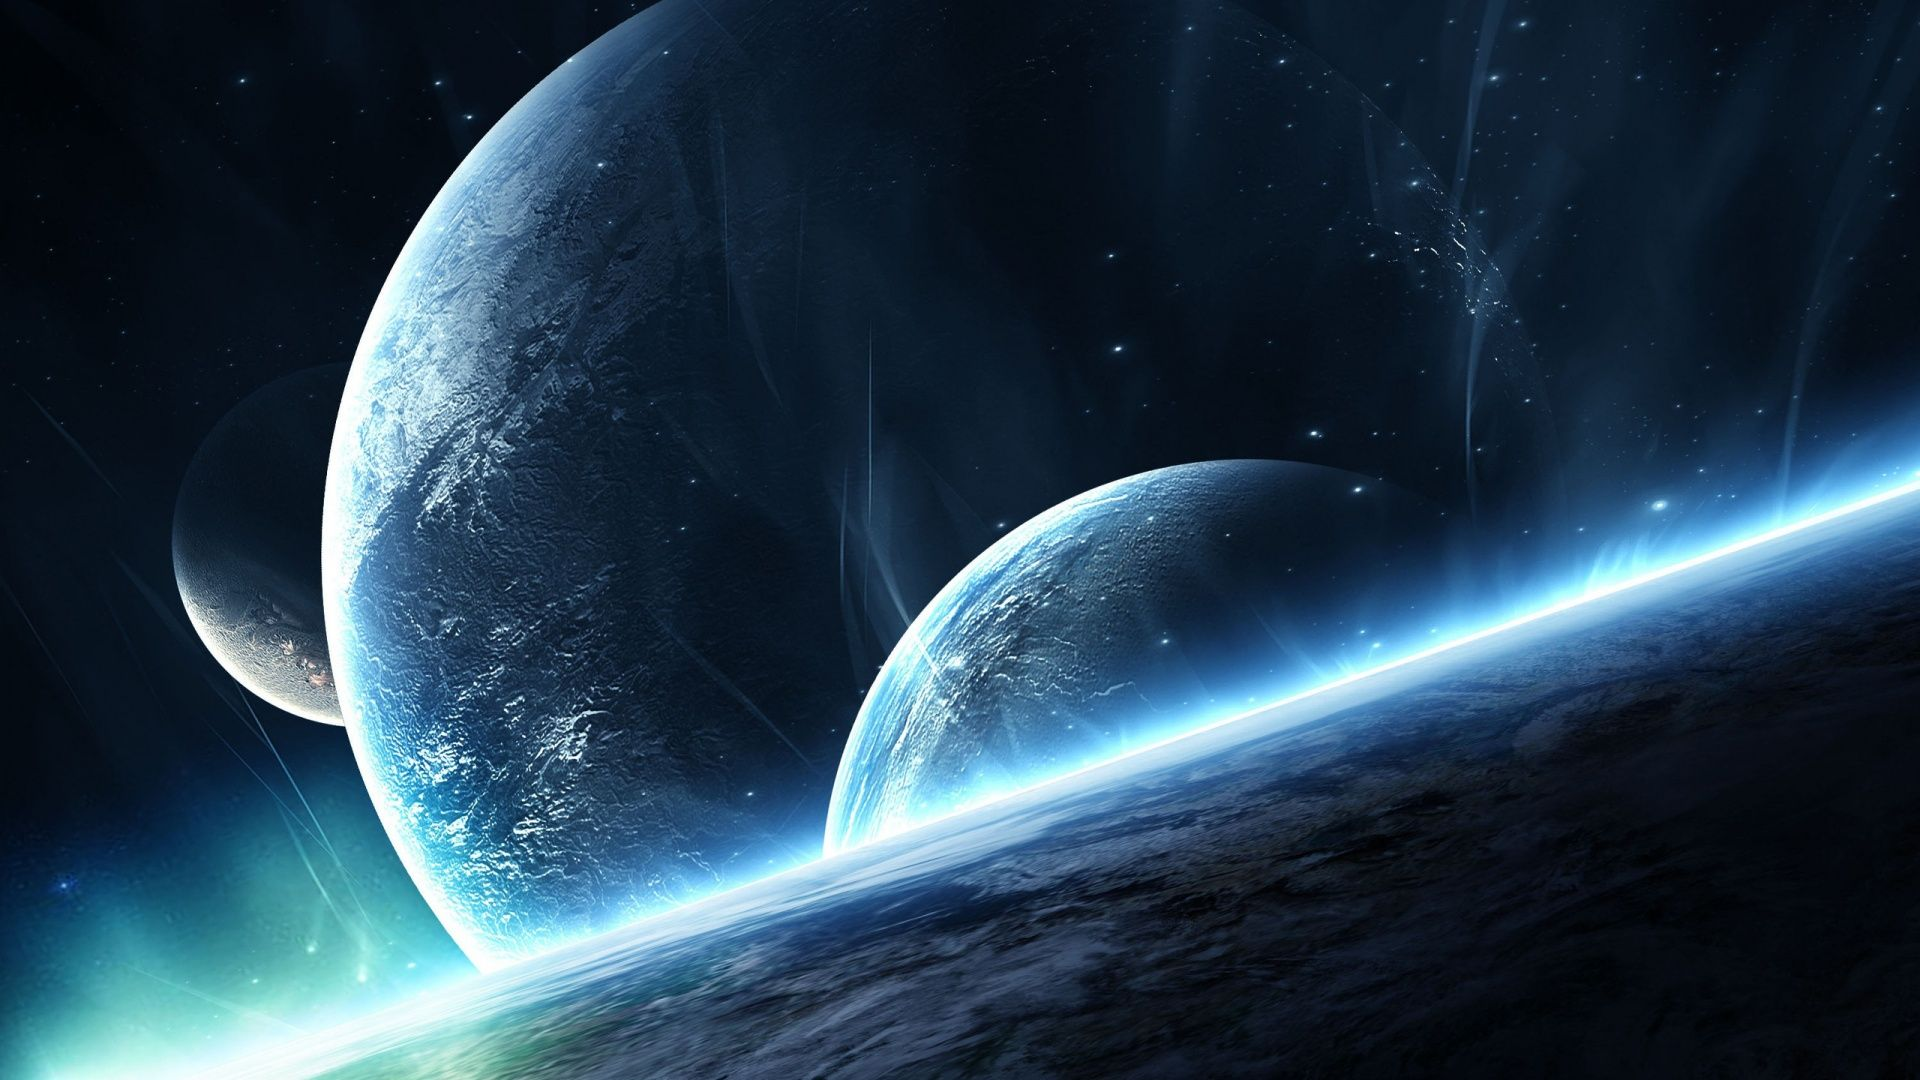 Multiple Planets Computer Background Scifi Hd Wallpapers Wallpaper Space Hd Space Planets Wallpaper